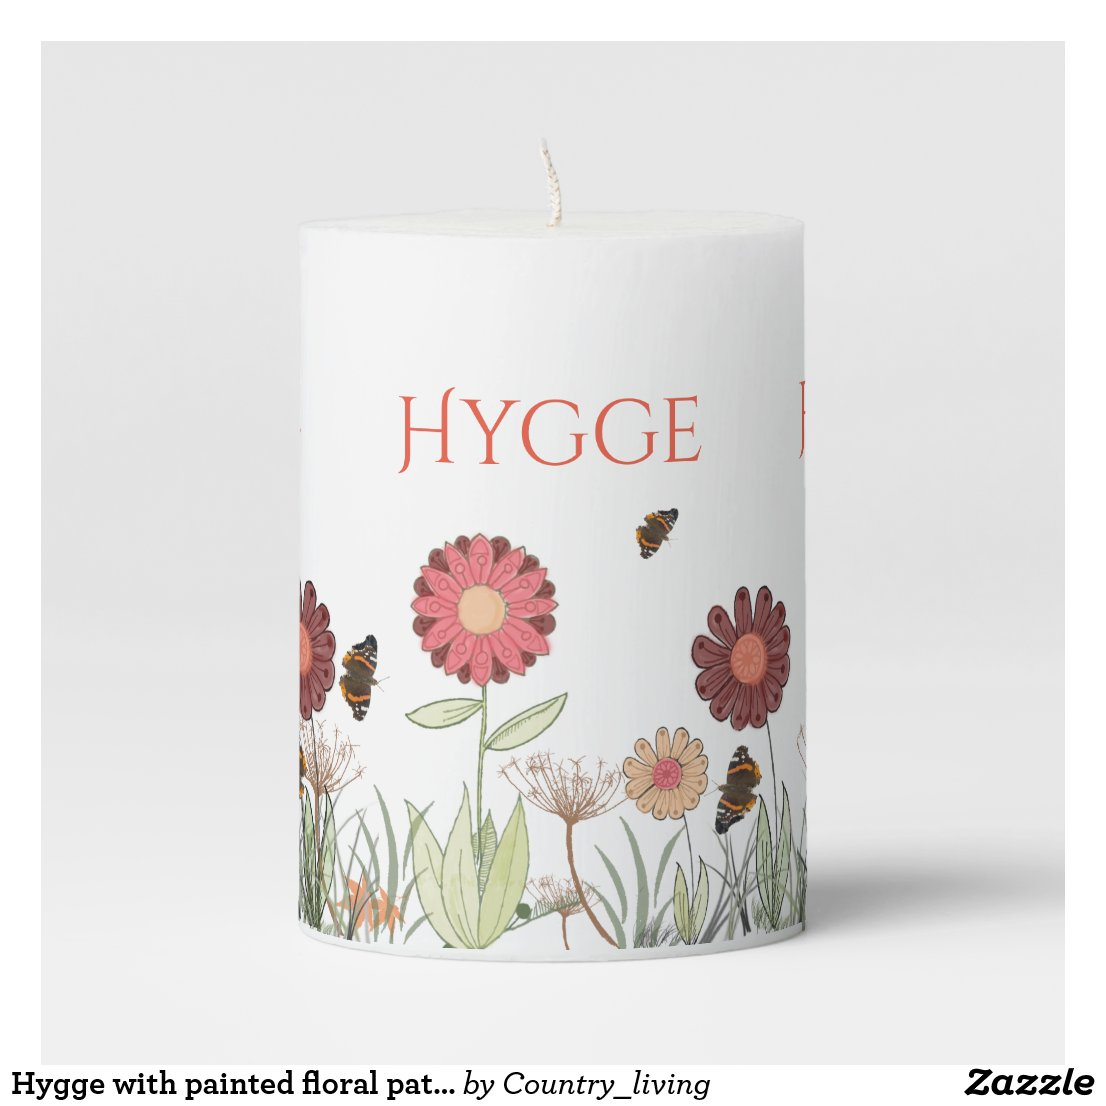 Hygge with painted floral pattern burgundy meadow